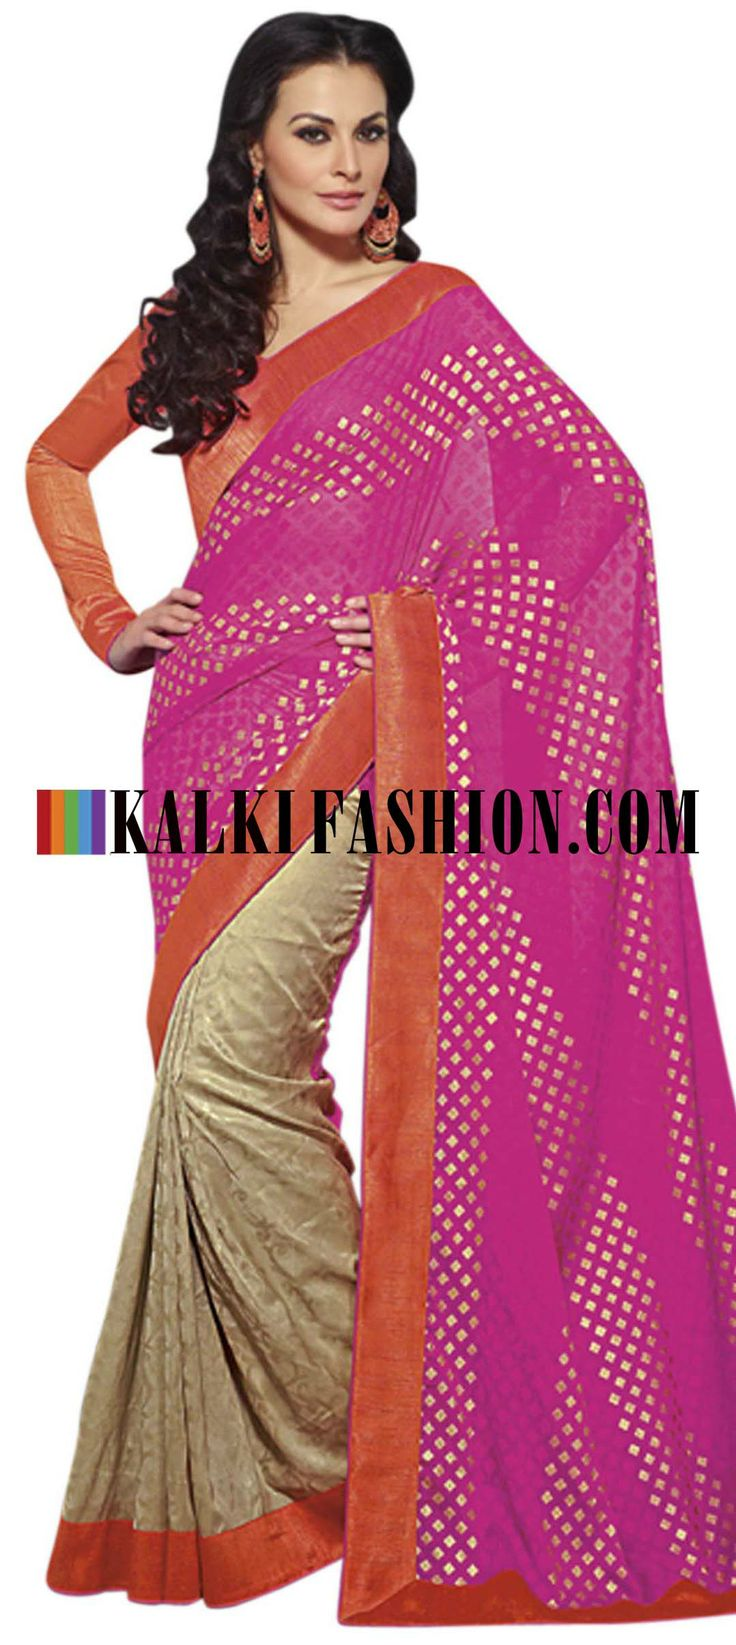 Buy Online from the link below. We ship worldwide (Free Shipping over US$100) http://www.kalkifashion.com/half-and-half-saree-in-pink-and-beige-with-raw-silk-border.html Half and half saree in pink and beige with raw silk border